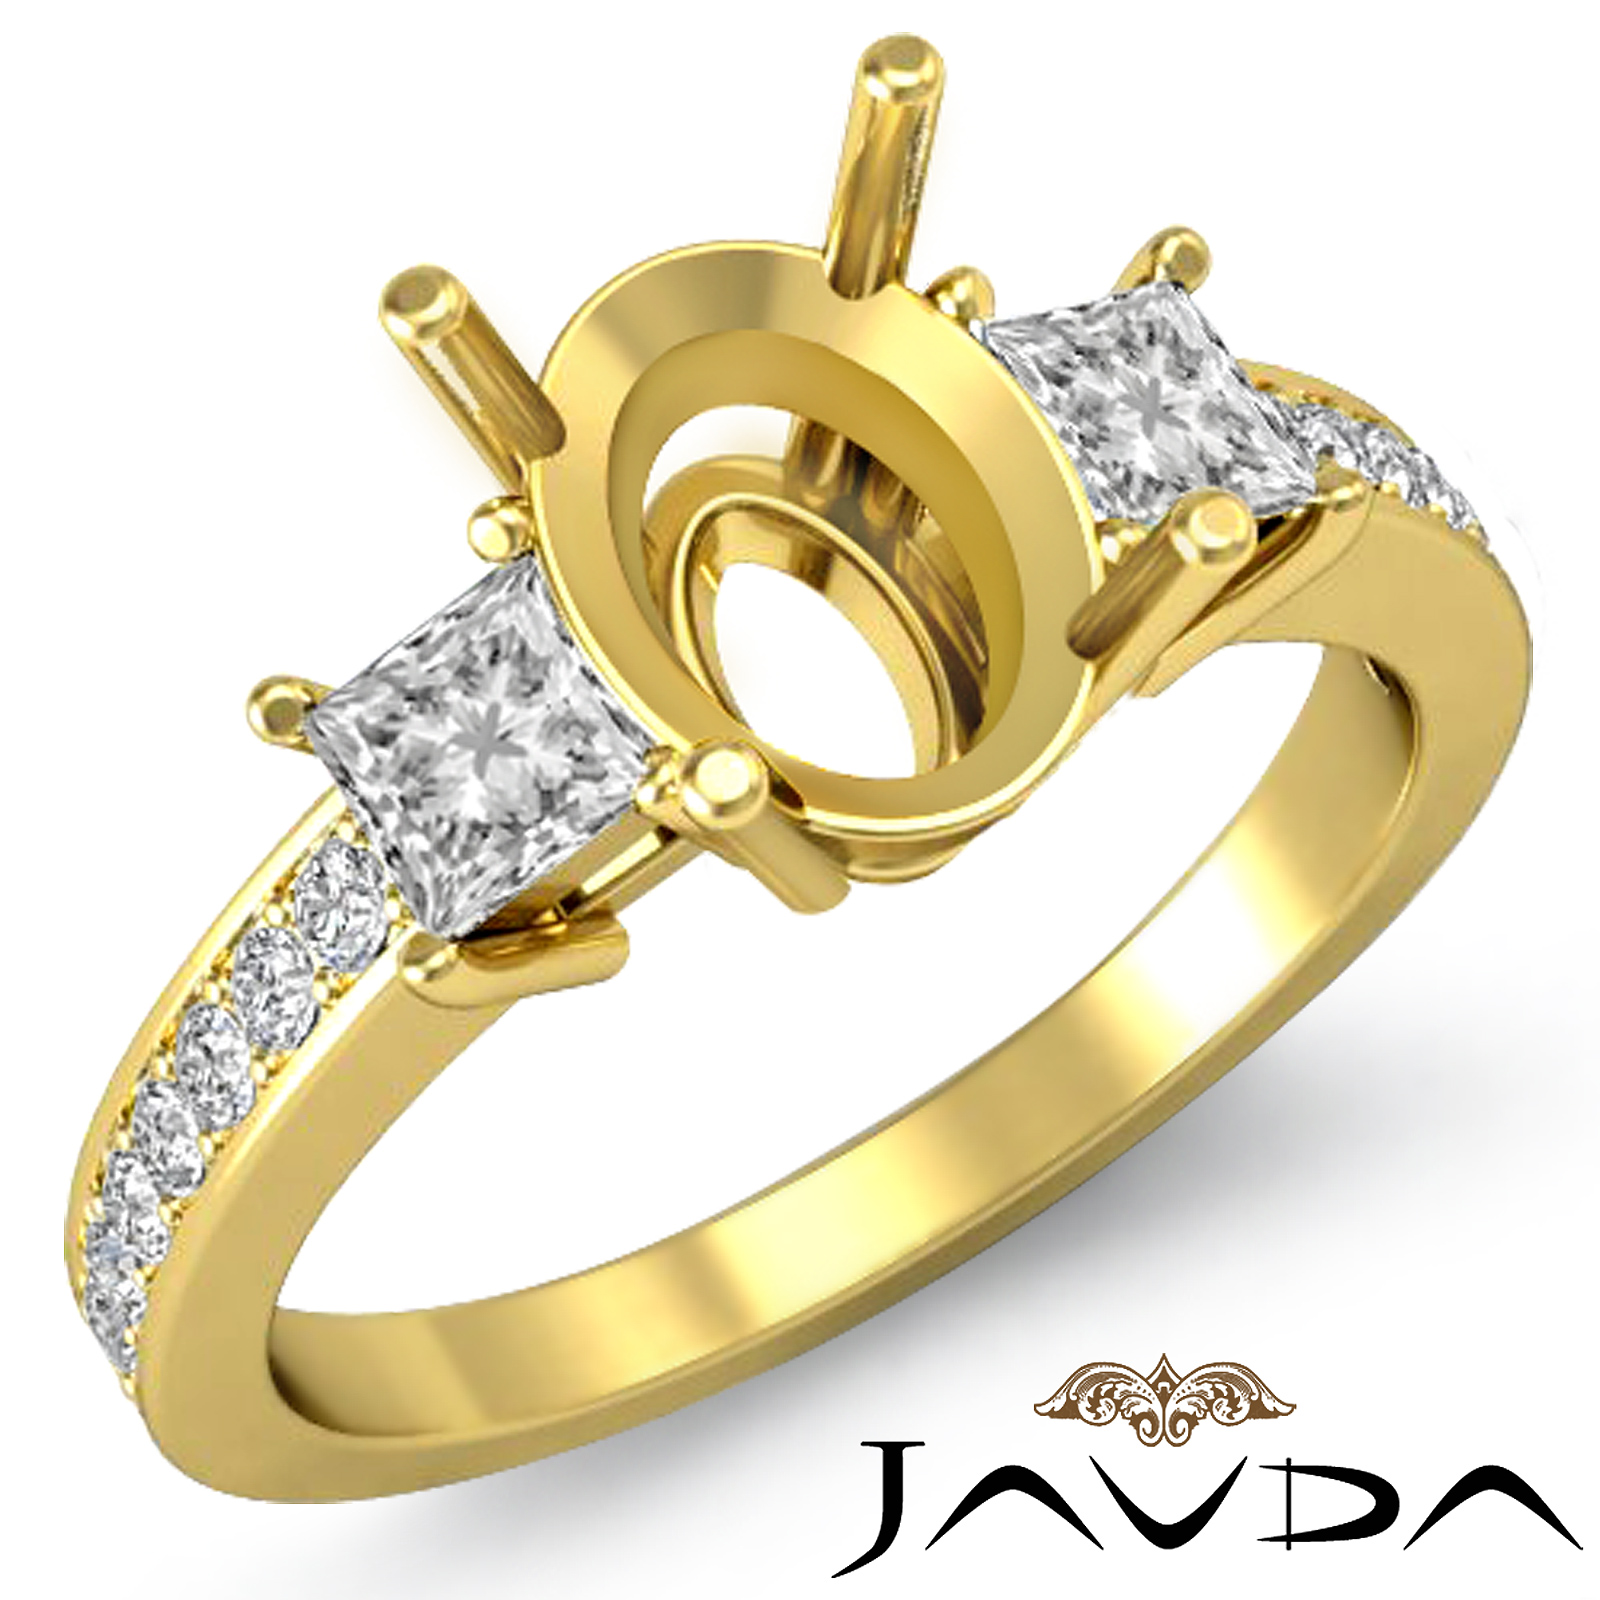 Diamond Engagement 3 Stone Unique Ring Princess Oval Mount 18k Yellow Gold 0